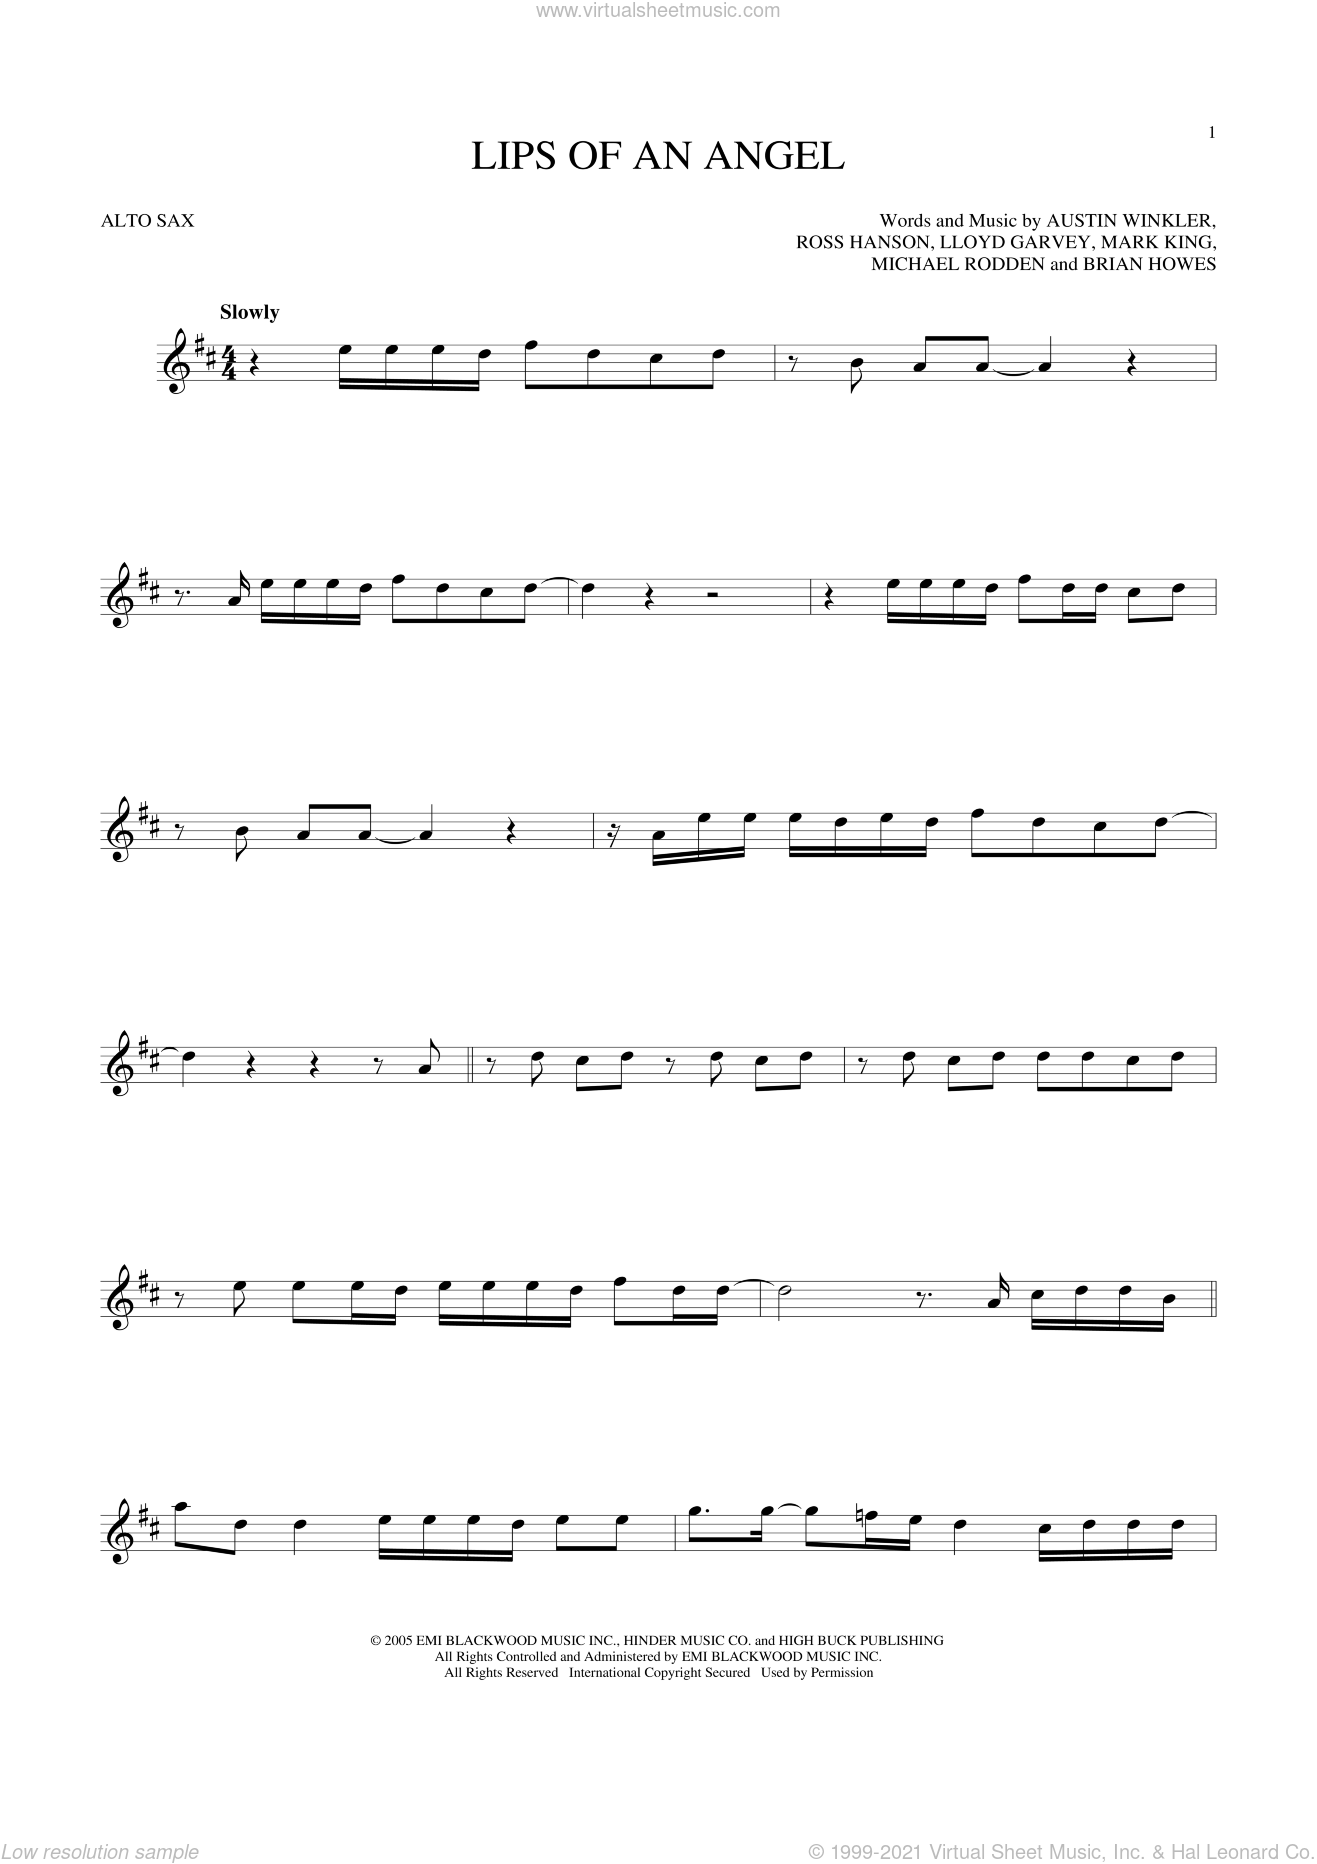 Lips Of An Angel sheet music for alto saxophone solo ( Sax) by Hinder, Jack Ingram and Brian Howes, intermediate alto saxophone ( Sax). Score Image Preview.